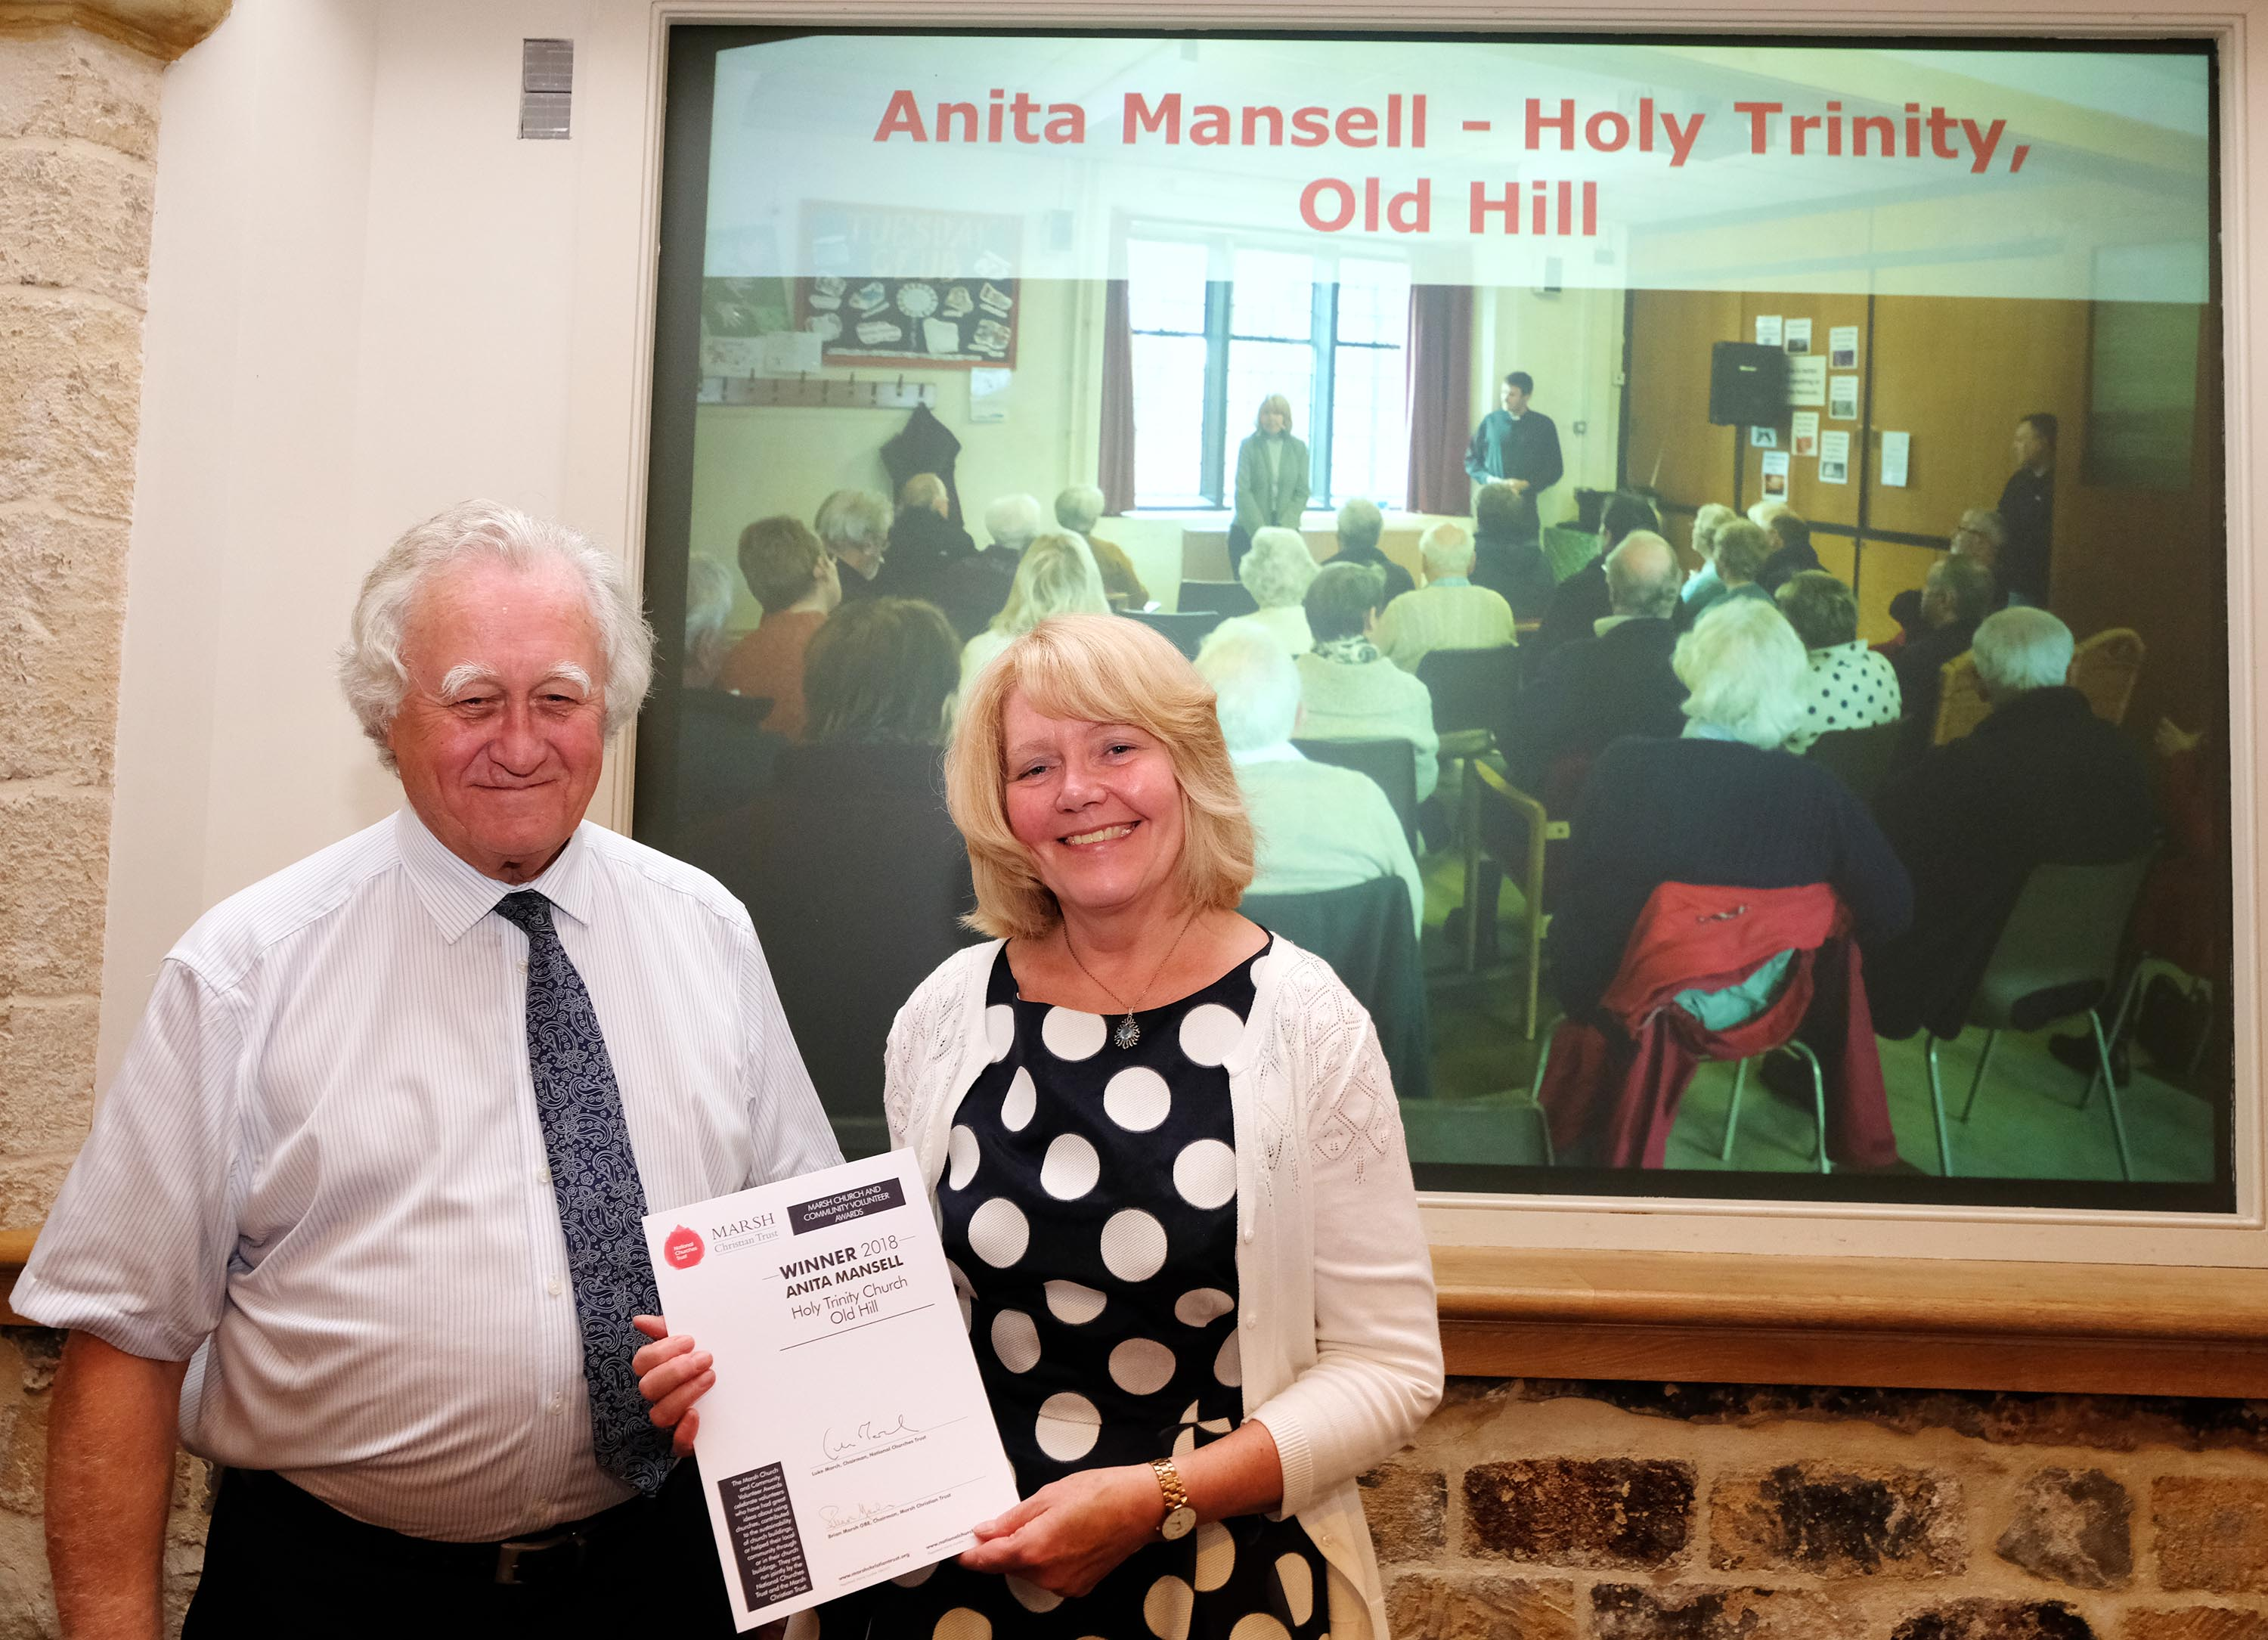 Brian Marsh from Marsh Christian Trust with Anita Mansell (c Mike Swift)